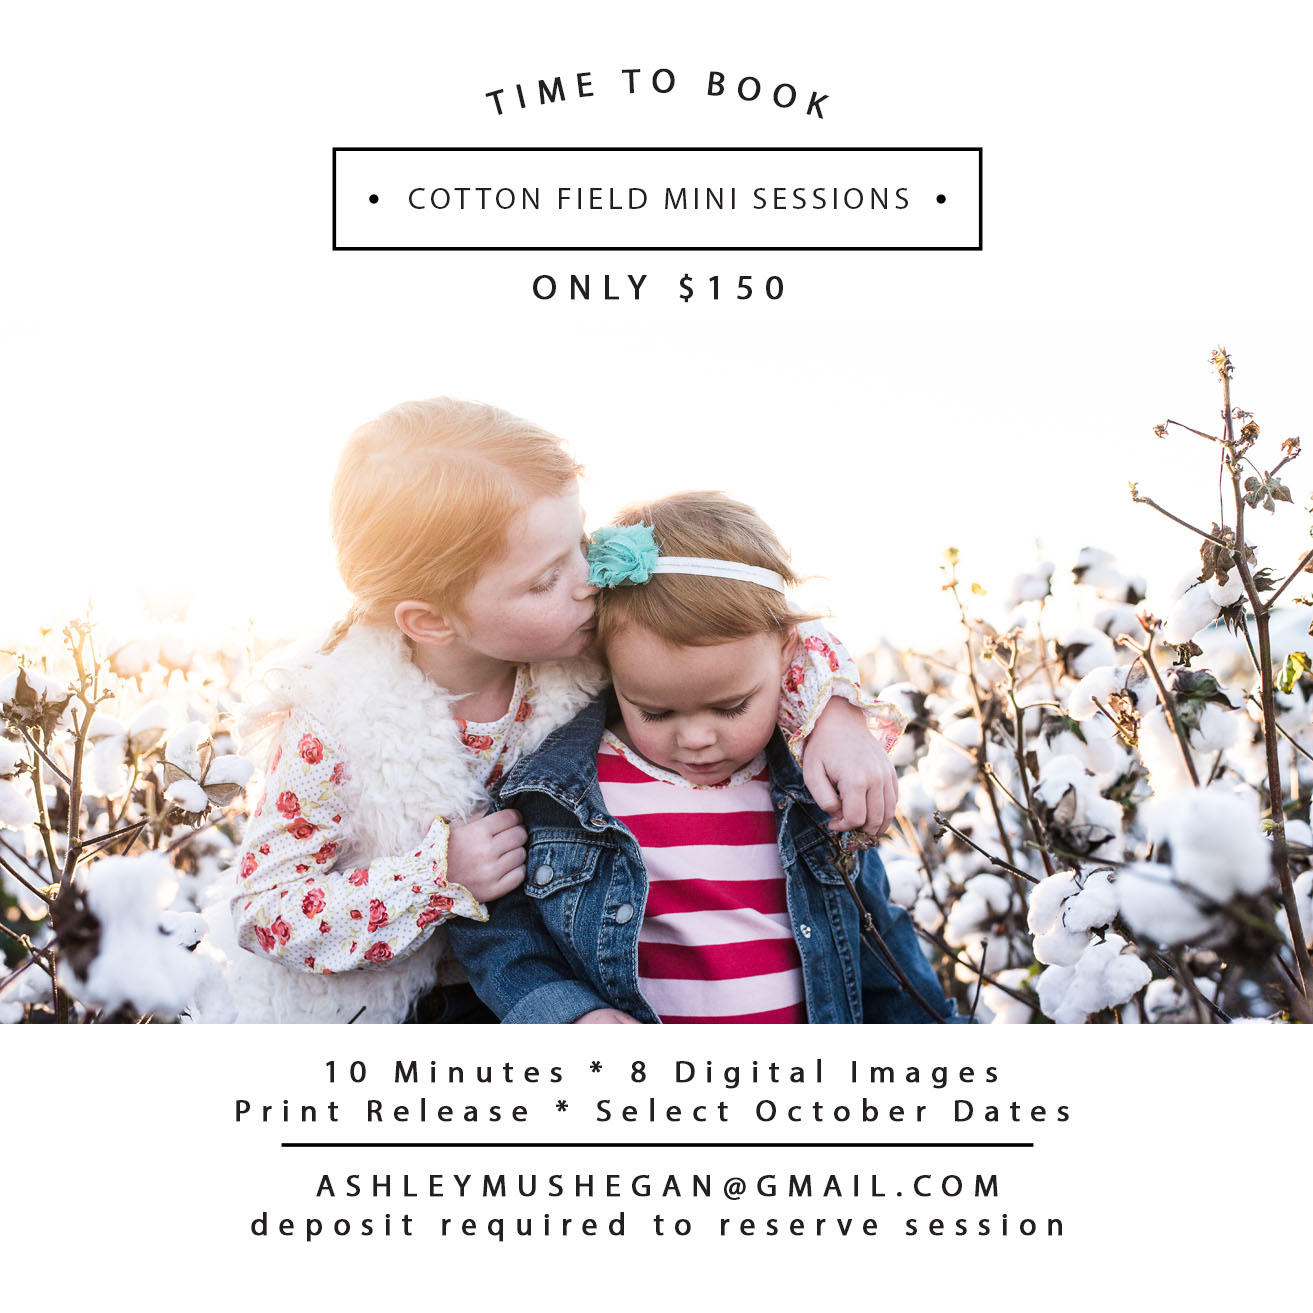 I will be using a cotton field in Cartersville, GA. I will send the exact location details the week of your session. I will be offering sessions on  October 24, 26, 27 & 28  unless there are any unforeseen circumstances with the field or bad weather. I will save the following week as rain dates and if the field is in good condition the next week and there are no rain dates I may be able to open up more spots. Those will be announced last minute and would be the evenings of October 29, 30 and November 1. I WILL ONLY BE ABLE to offer mini sessions for the dates and times listed and will not be able to do full sessions using the Cotton Fields. Mini sessions are only reserved for immediate families. (Couples, Parents and their children or siblings only) Please keep in mind that these will be 10 minute mini sessions. I will shoot a few minutes of family photos, siblings and then a few individuals of children. For couples sessions we will fit in as many different poses as time allows. It is very important that you arrive at least 15-20 minutes before your scheduled session time to have all members of your family ready. The schedule is tight but I have been doing mini sessions for many years and everything has always run really smoothly because clients arrive early and are dressed and ready for their session to begin on time. All sessions must be paid in full at the time of booking since we are less then 30 days from the session dates. Please read the steps for booking your session carefully. I will only be booking through email messages- No FACEBOOK or Text messages  DATES & TIMES: OCTOBER 24, 26, 27  5:30pm-6:30pm      OCTOBER 28 7:50am-8:40am  1. Please email ashleymushegan@gmail.com   subject line:   Cotton Field MINI & list your desired dates and booking time. It would be helpful if you would list all of the different dates that will work for your family incase the first choice gets booked. (Sat morning will most likely book up fastest)  2. As soon as I confirm that y